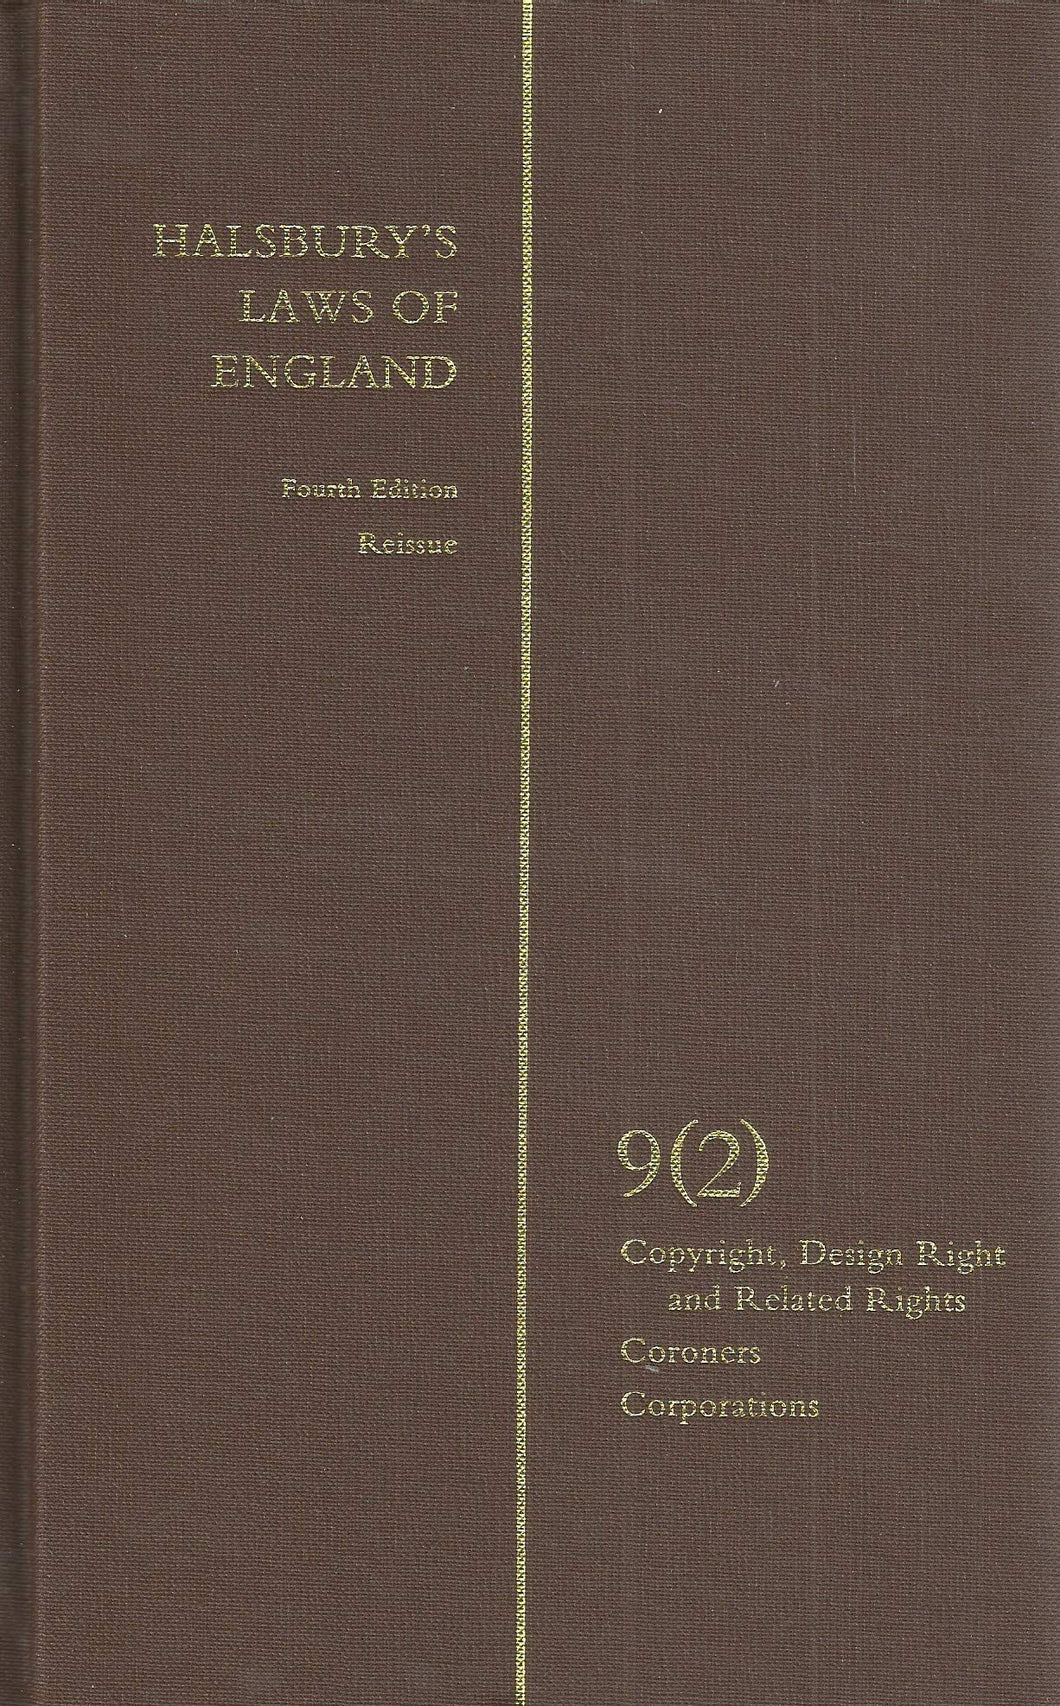 Halsbury's Laws of England 4th Edition Volume 9 (2)